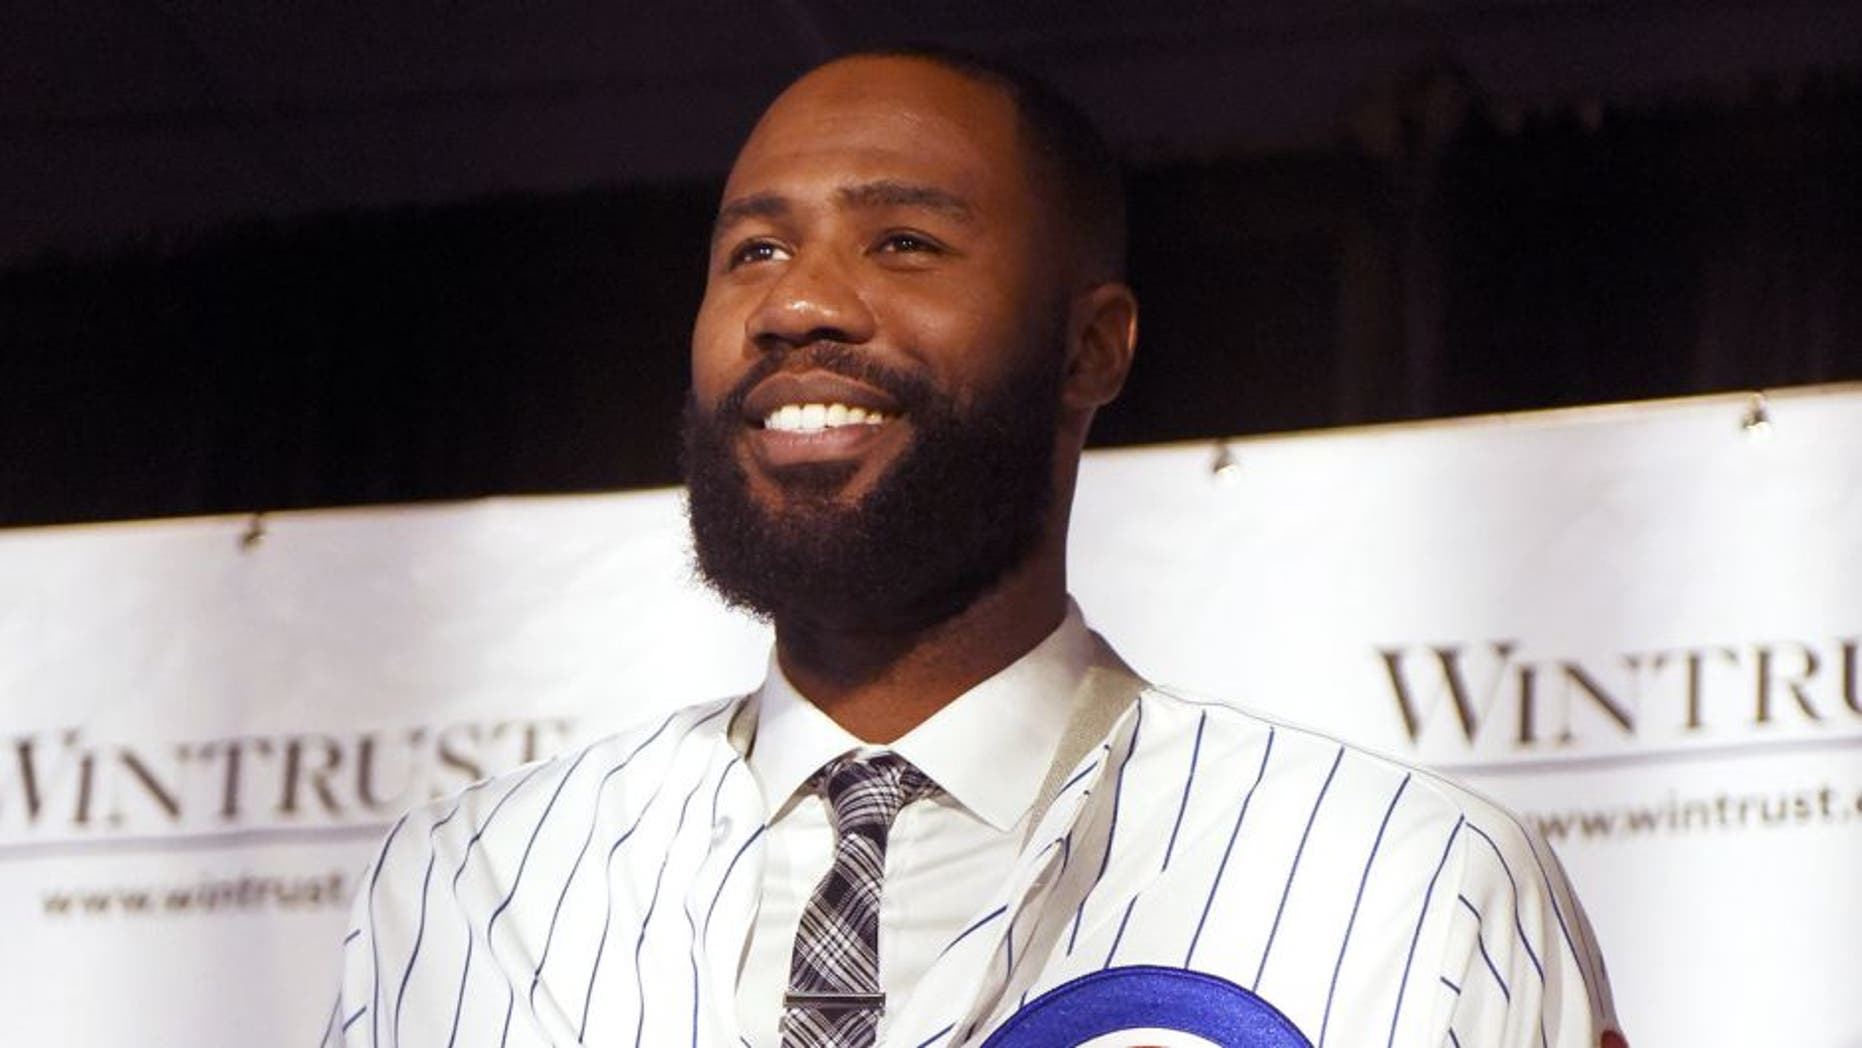 CHICAGO, IL- DECEMBER 15: Jason Heyward during an introduction press conference on December 15, 2015 at Spiaggia Restaurant in Chicago, Illinois. (Photo by David Banks/Getty Images)